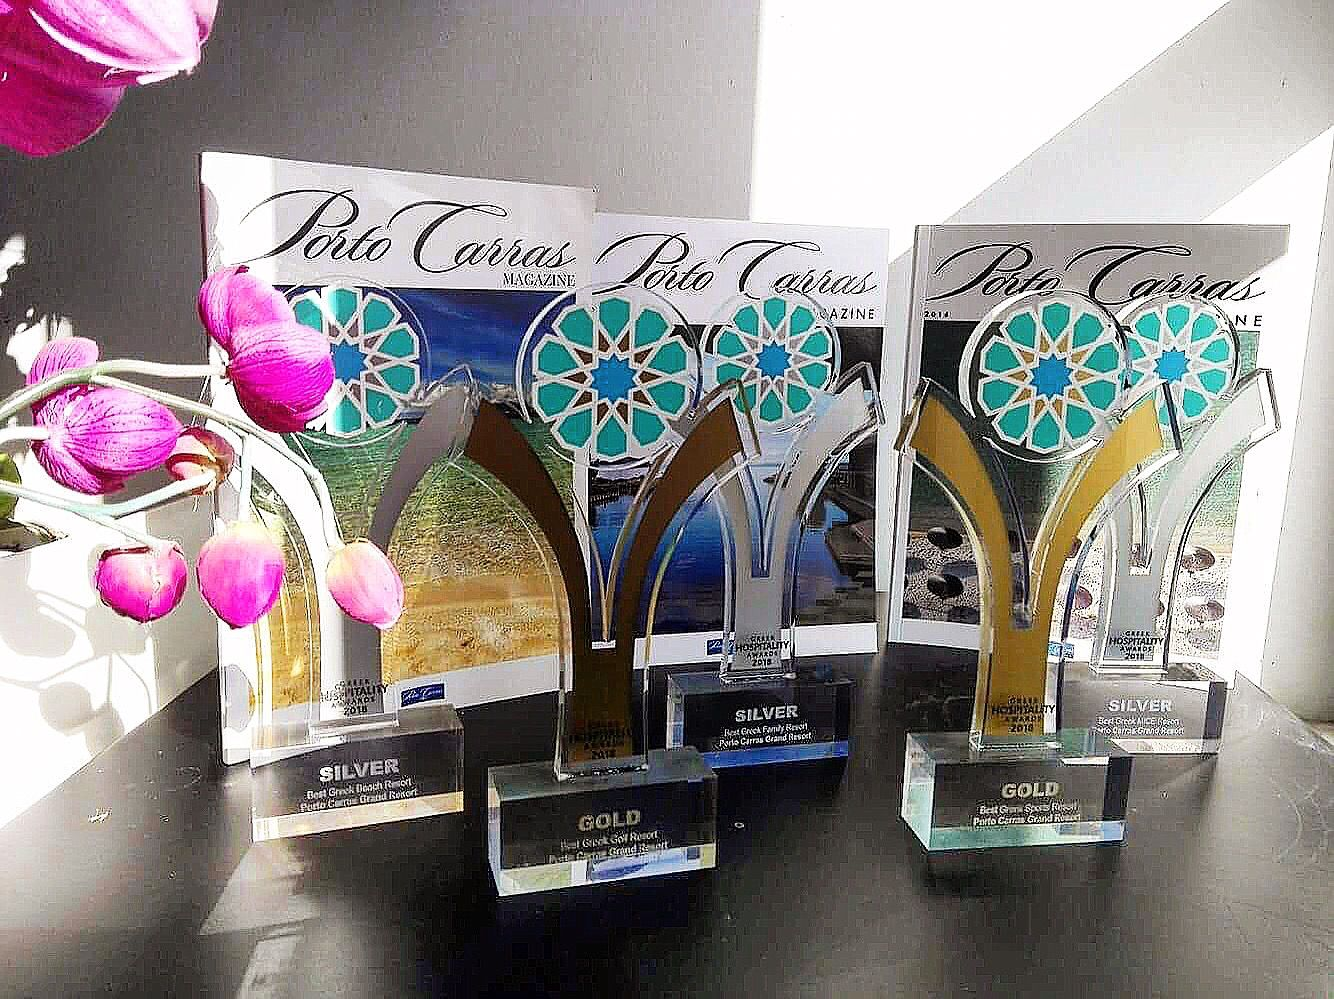 We are so proud to announce that we #won five awards for @Porto Carras Grand Resort in the #Greek HospitalityAwards2018, in the categories: «Best Greek Golf Resort  (Gold)», « Best Greek Sports Resort (Gold)»,  «Best Greek Beach Resort (Silver)» , « Best Greek Family Resort (Silver)», and  « Best Greek MICE Resort (Silver)» #Congrats to all of you for your selfless dedication! #PortoCarras #gold #silver #GreekHospitalityAwards #GHA18 #Winners #awards #GreekHopitality #tourism #SoProud